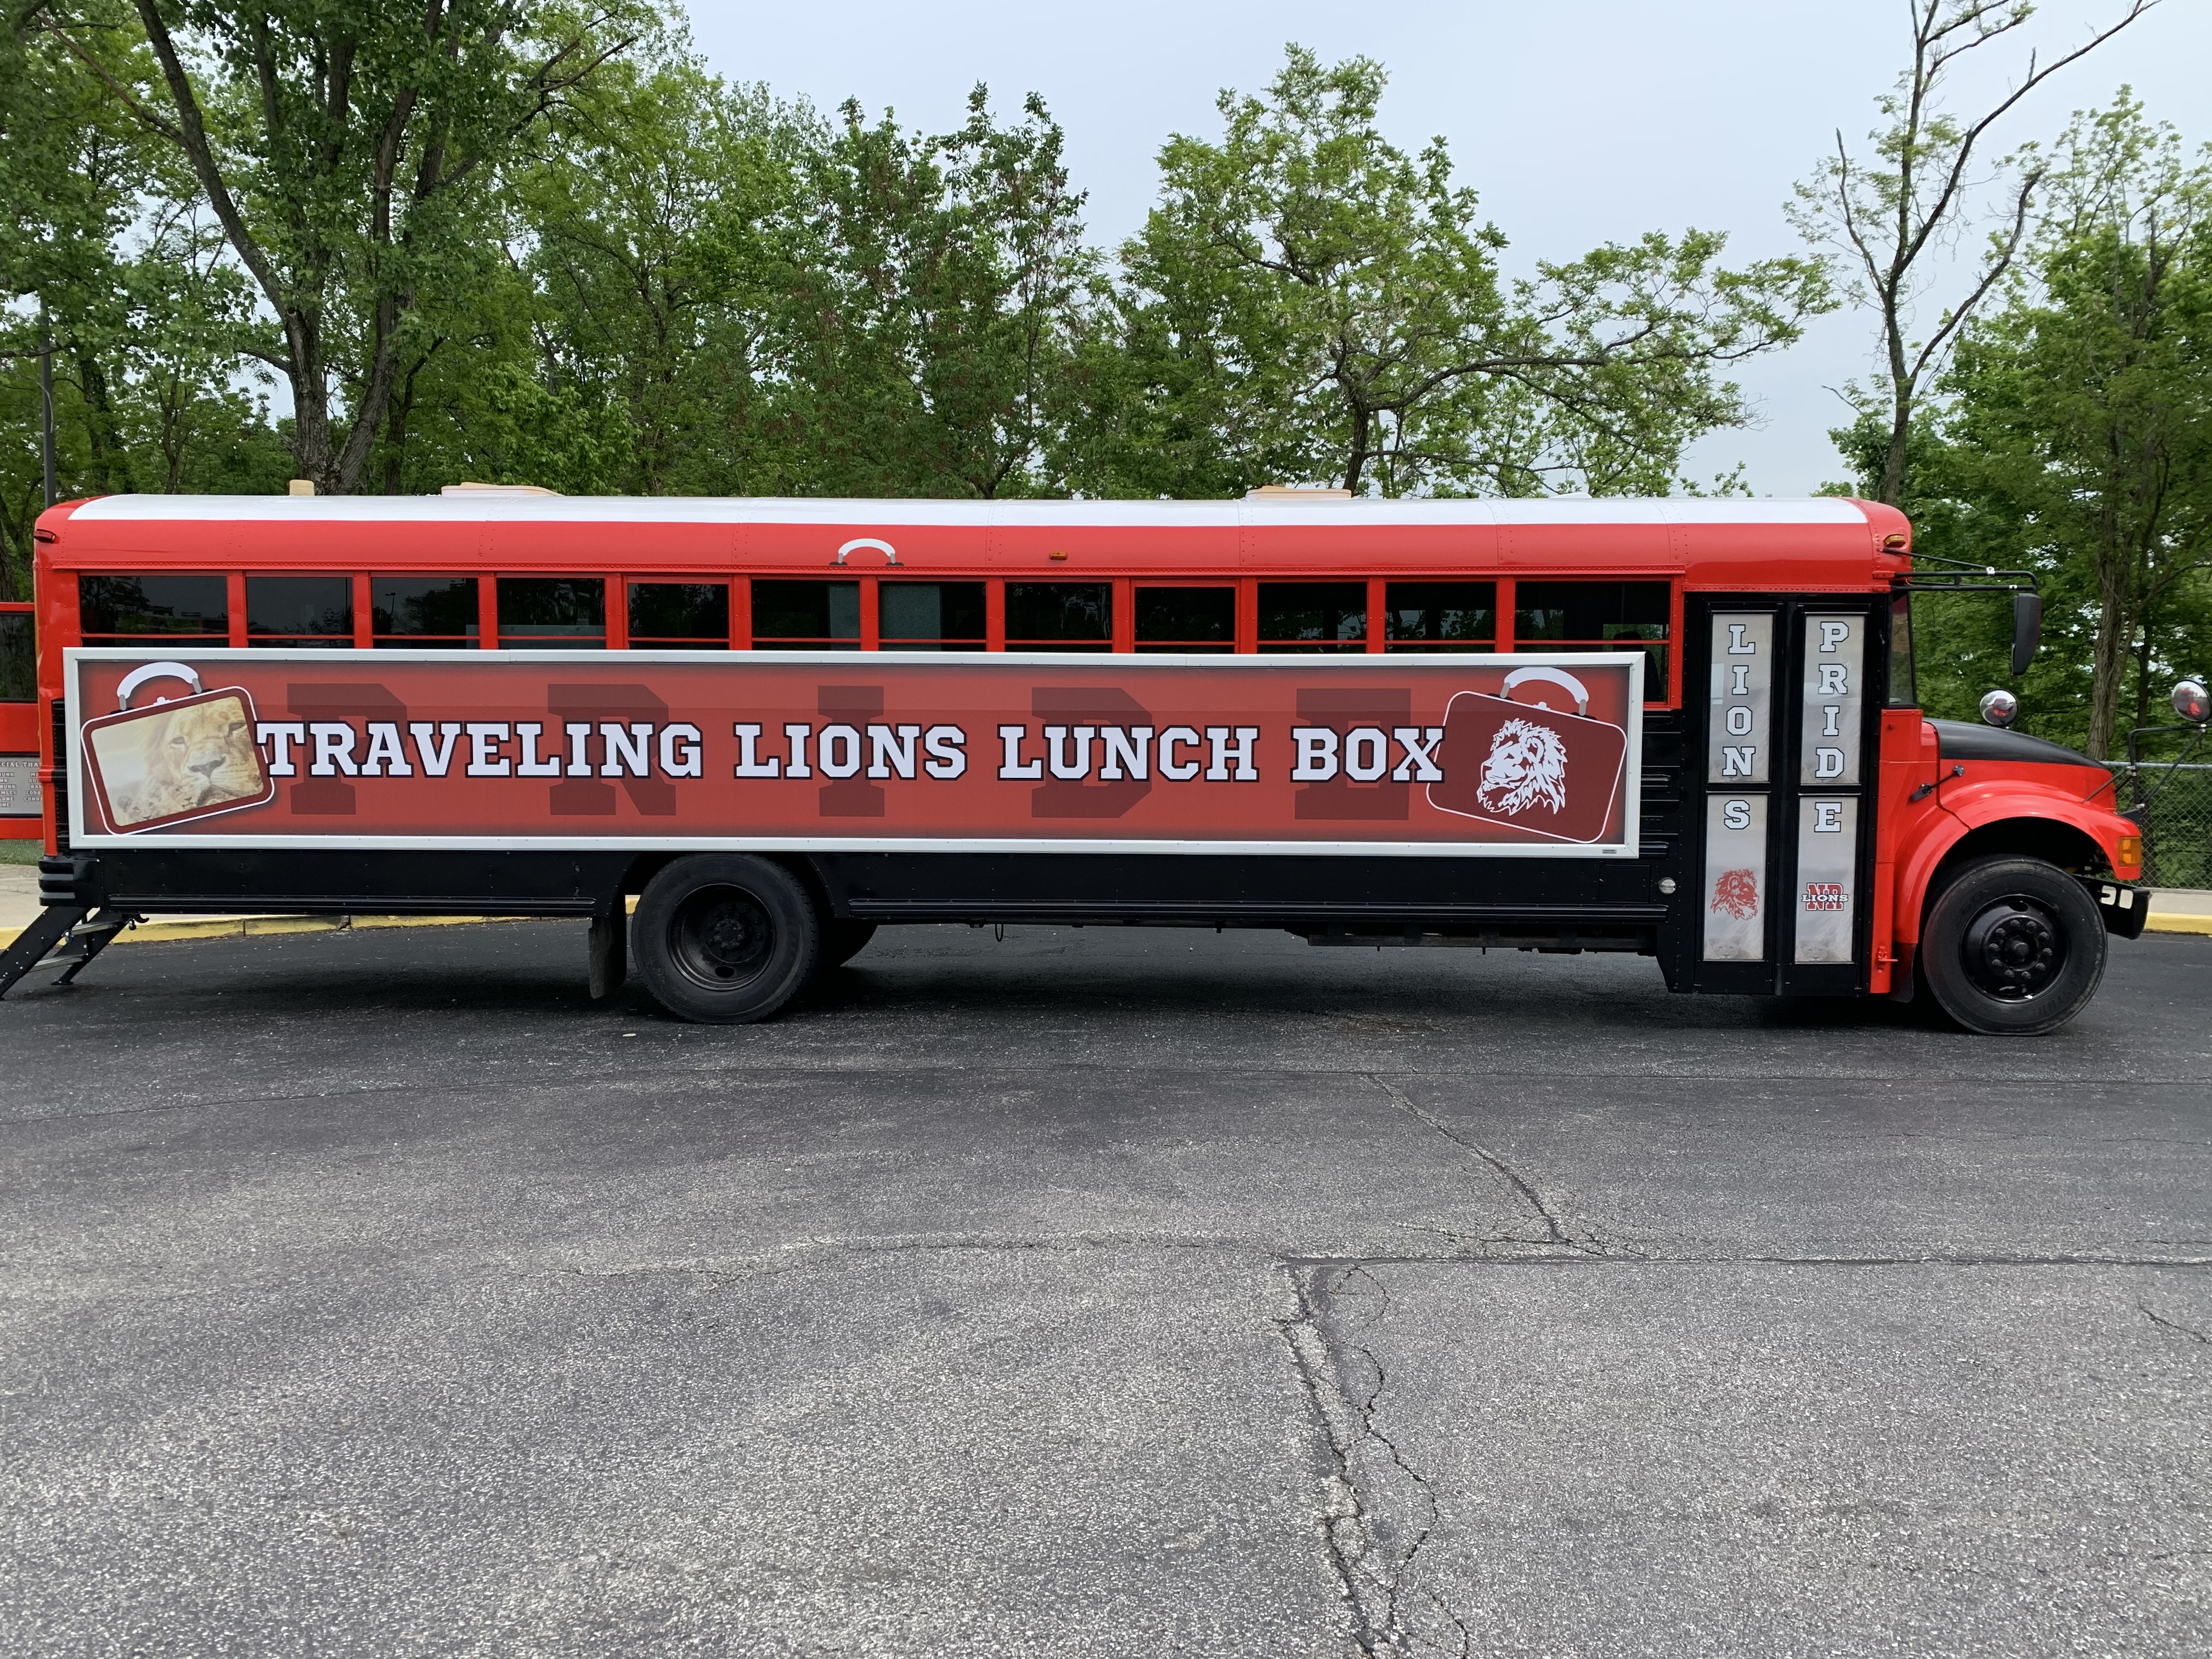 Picture of the Traveling Lions Lunch Box food bus